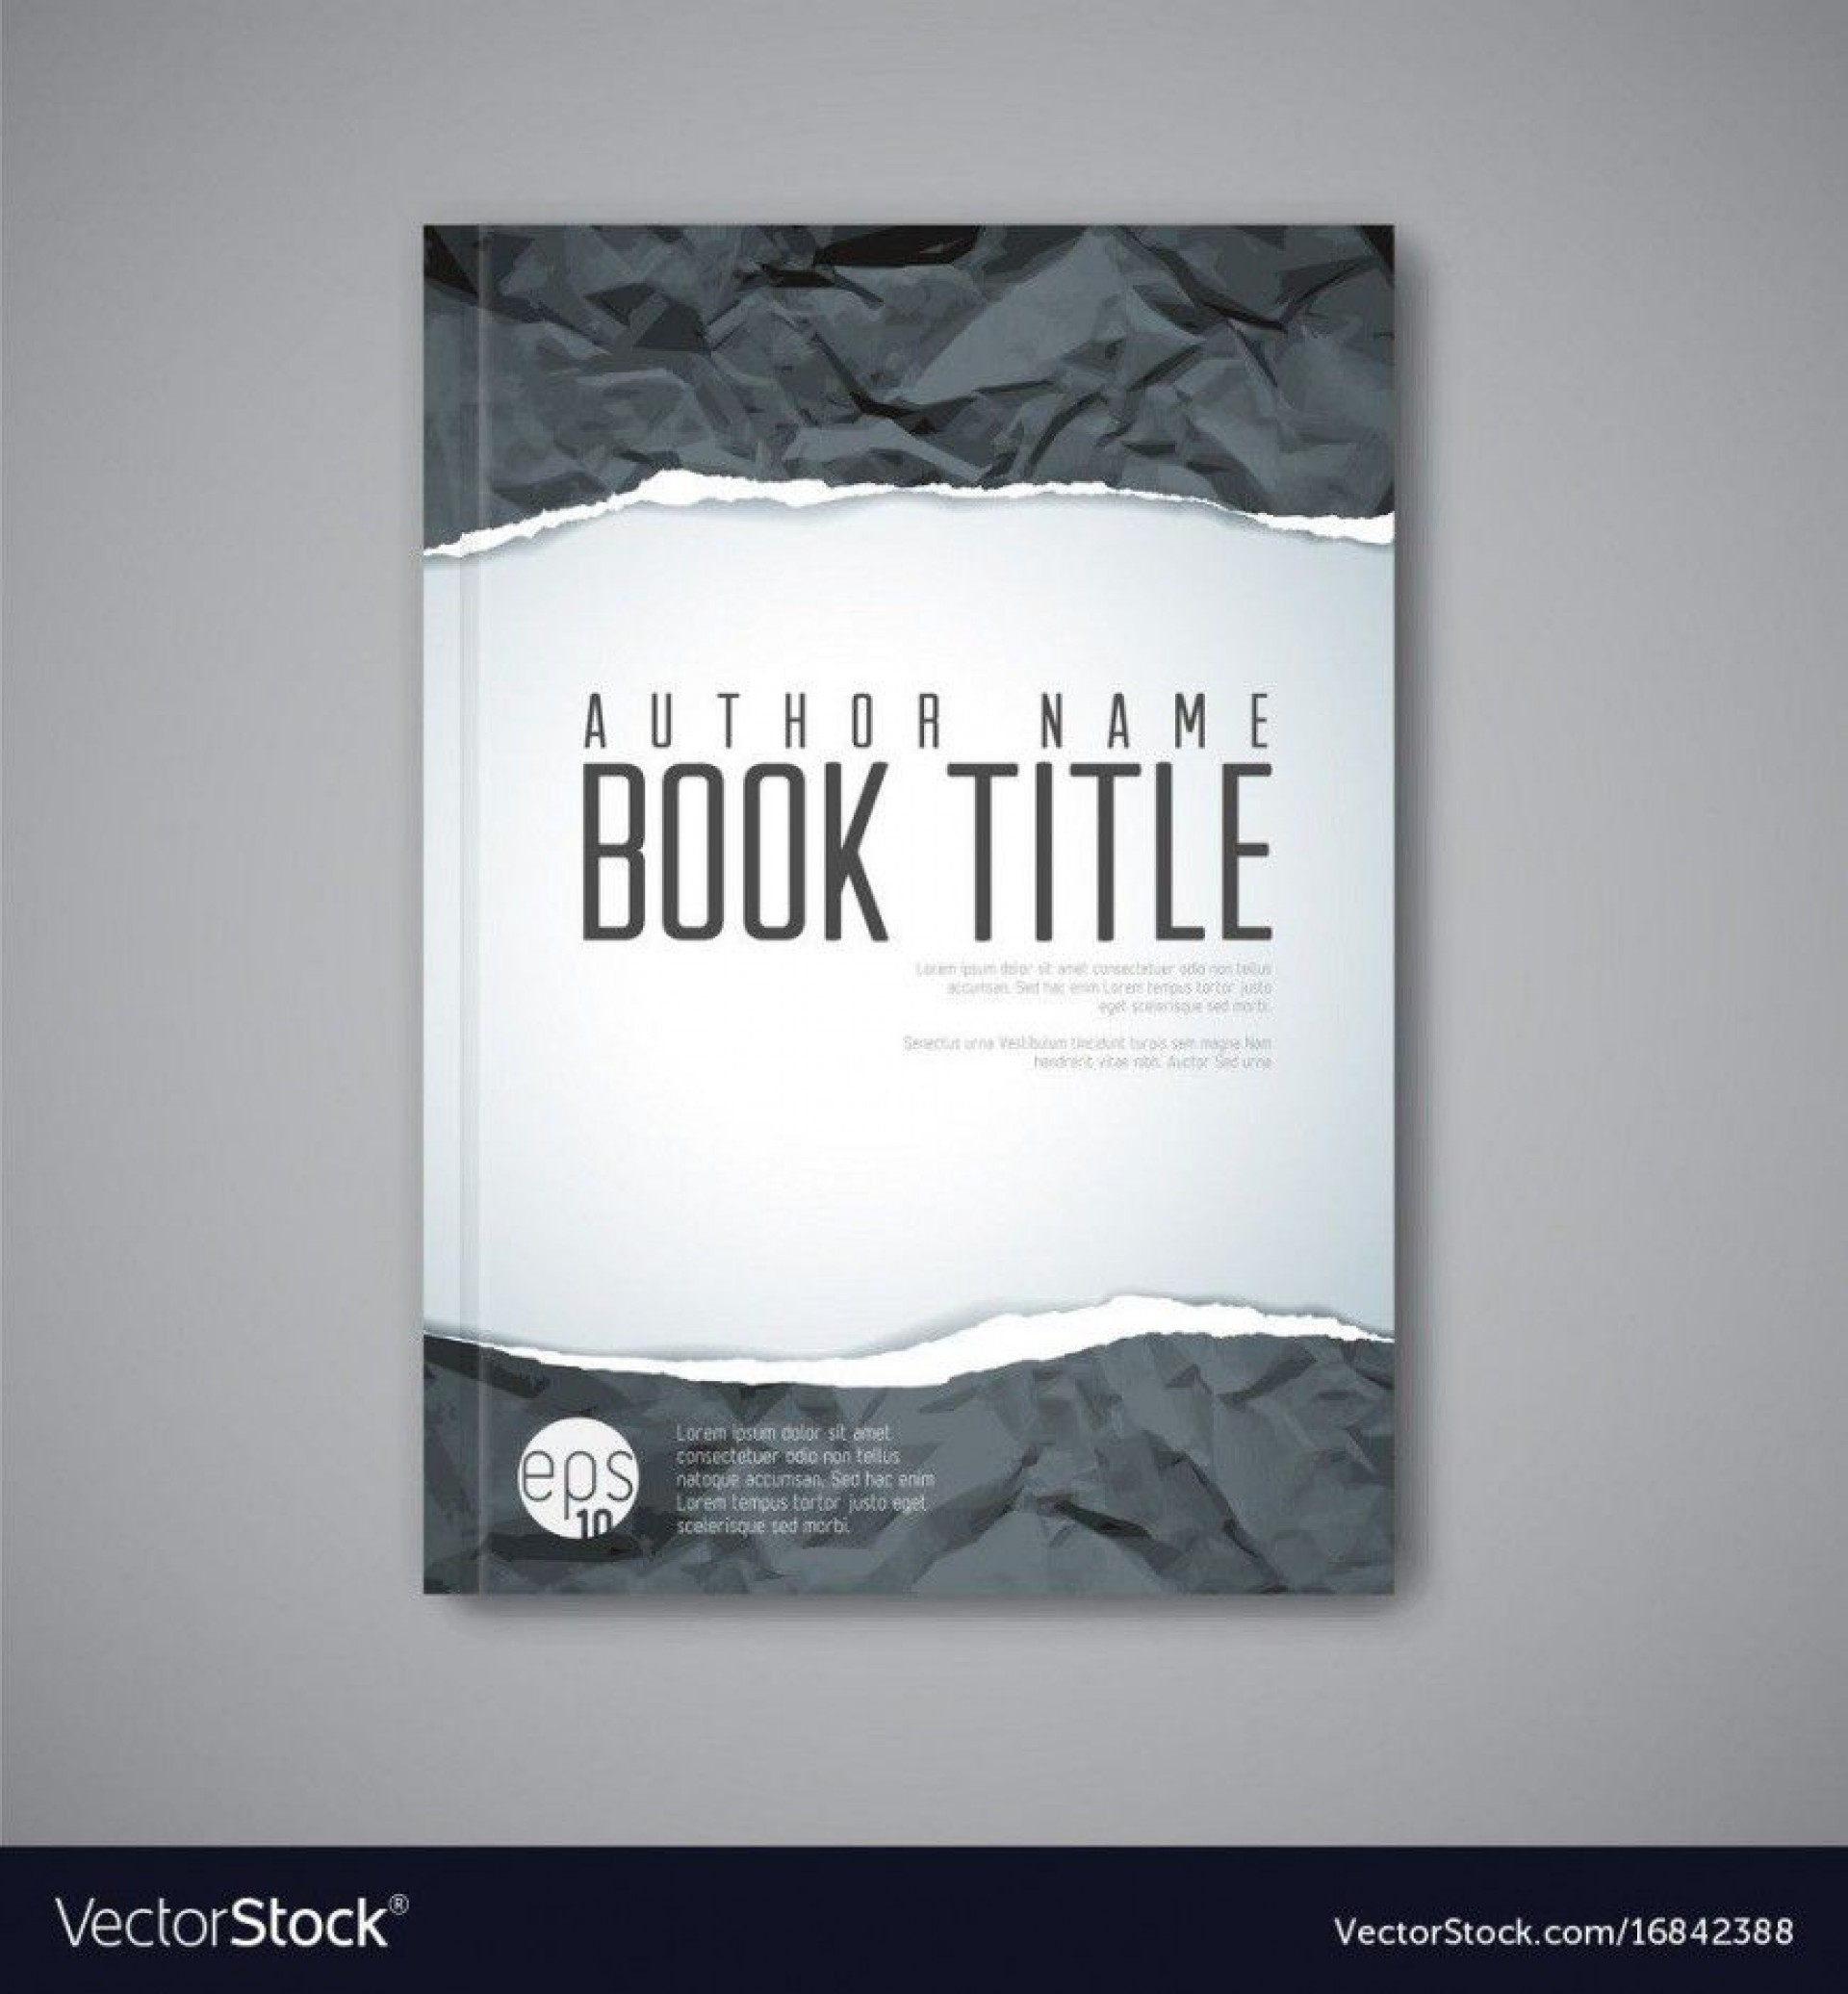 001 Best Free Download Book Cover Design Template Psd Inspiration 1920